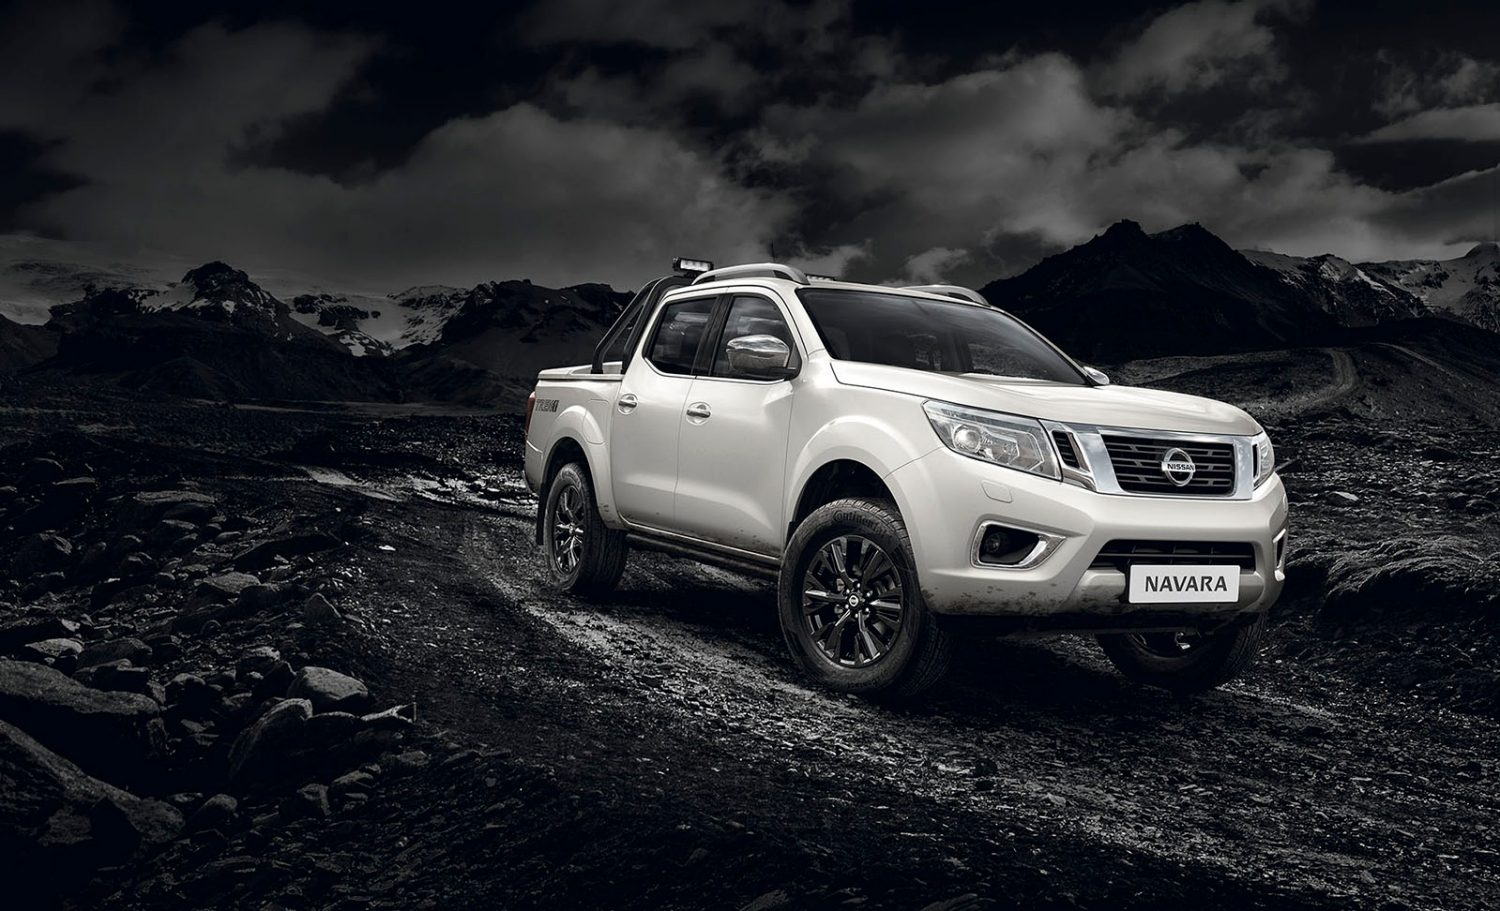 Nissan Navara pick-up 4x4